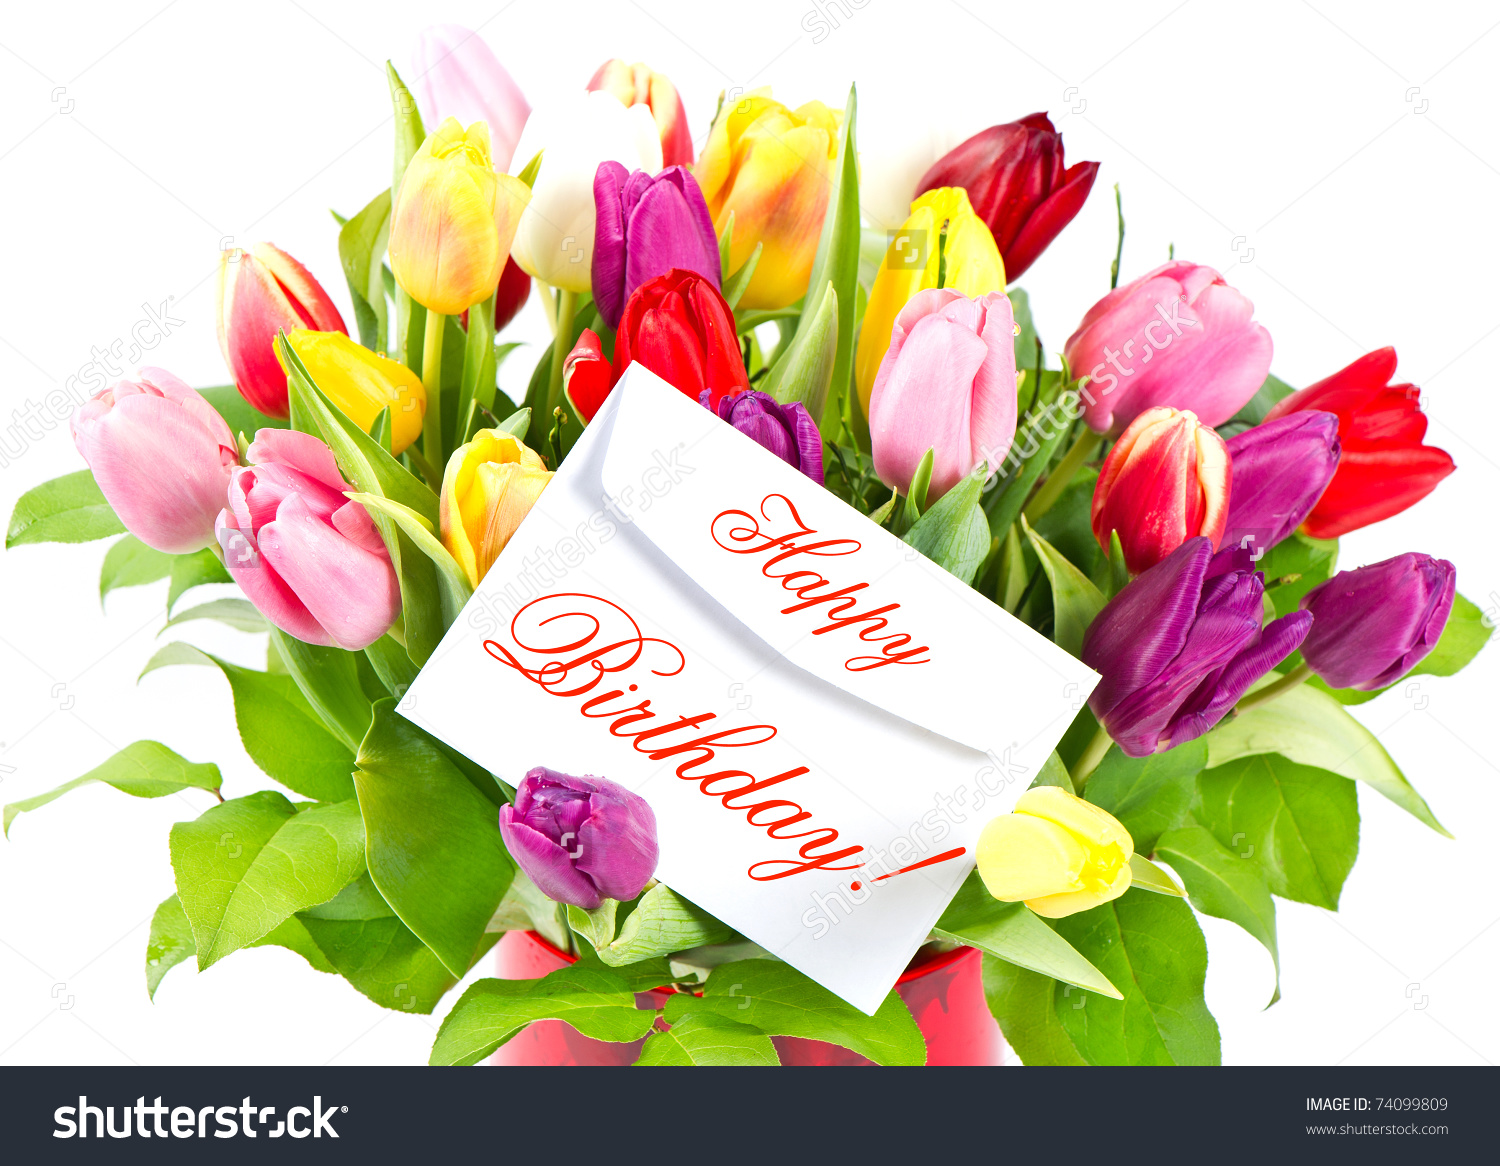 Happy Birthday Colorful Bouquet Fresh Tulips Stock Photo 74099809.